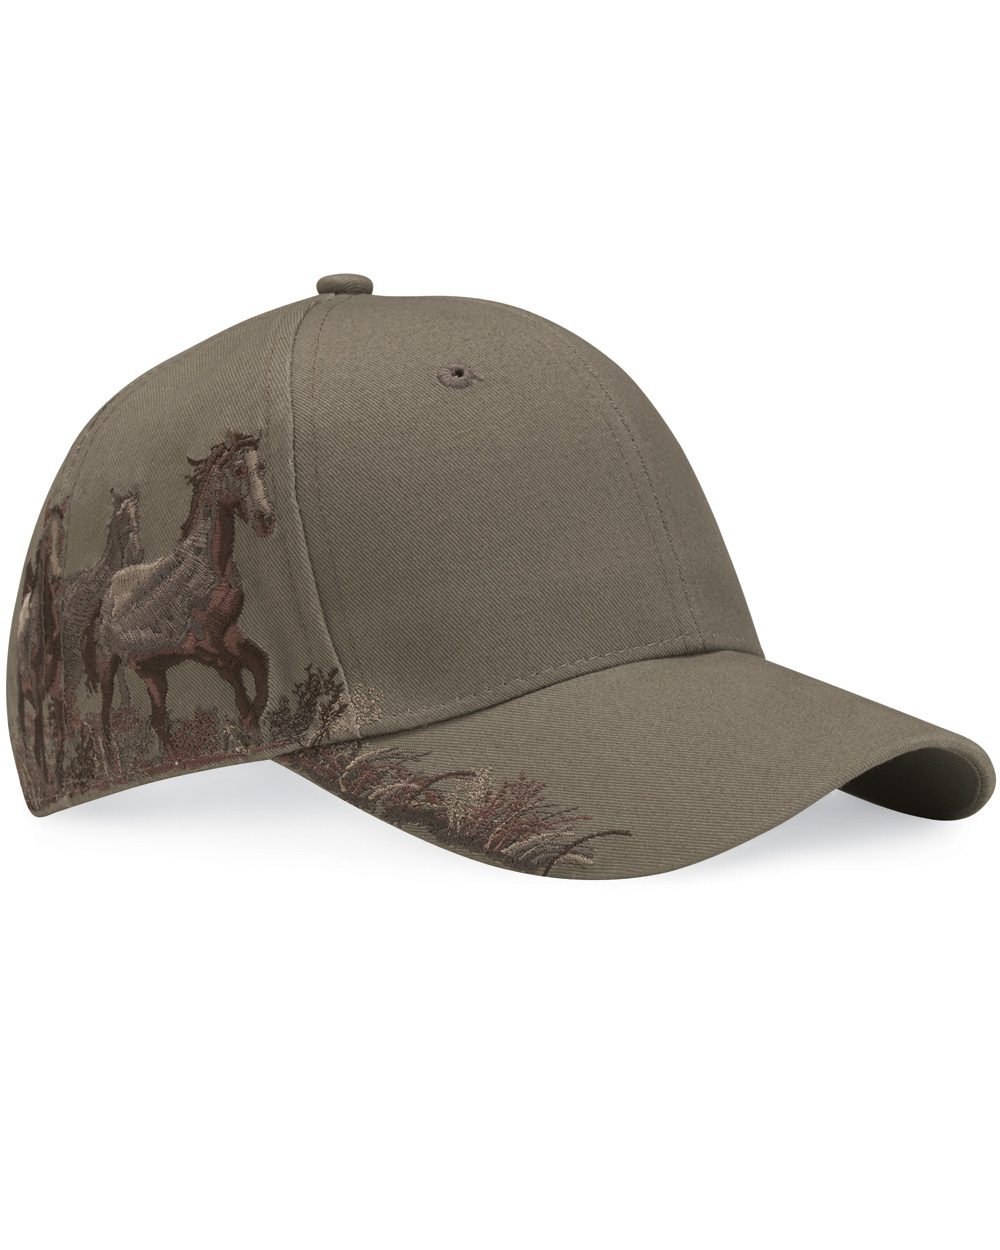 DRI DUCK Wildlife Series Mustang Cap - 3264